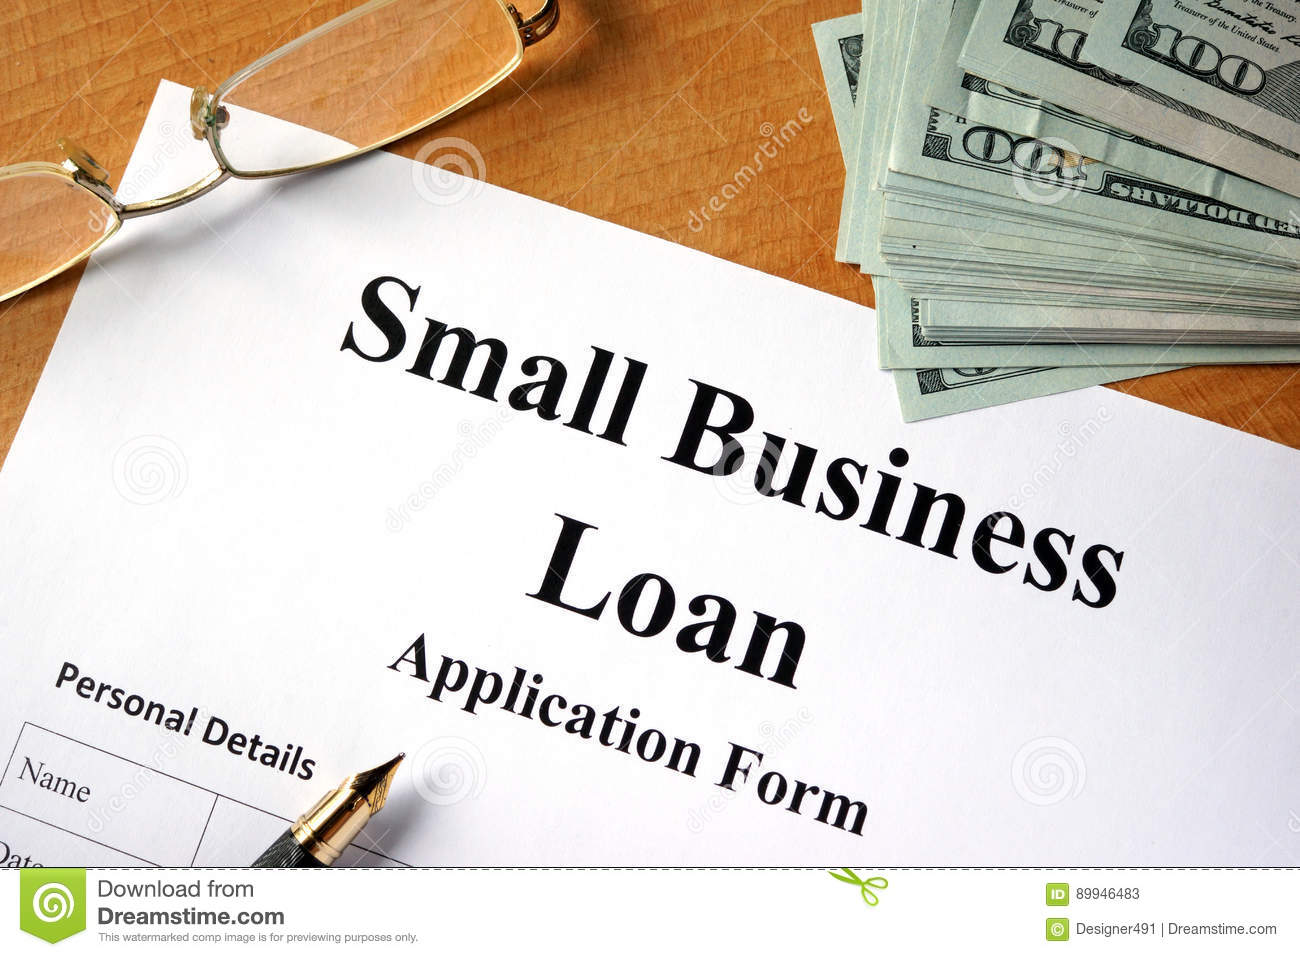 Small business loan form stock image image of lender 89946483 small business loan form friedricerecipe Images